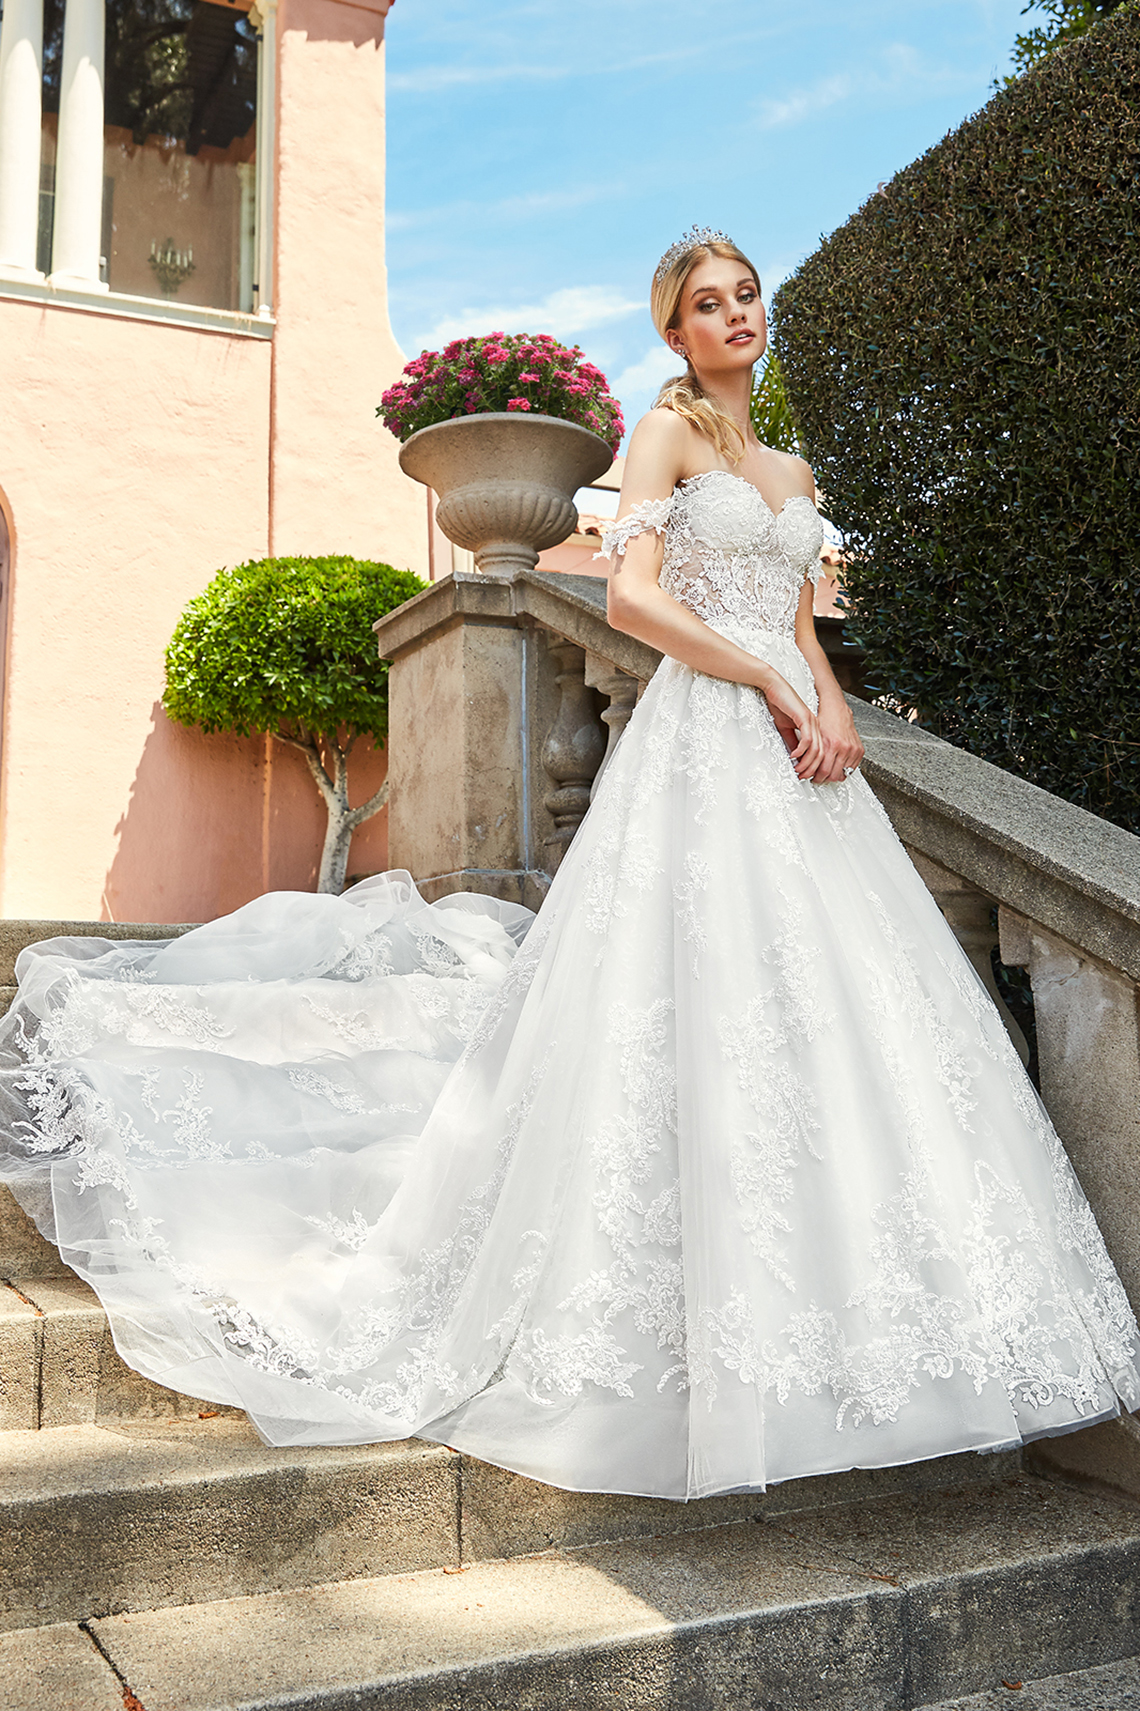 10 Stunning Wedding Dresses By Destination – Val Stefani Cortina Dress 1